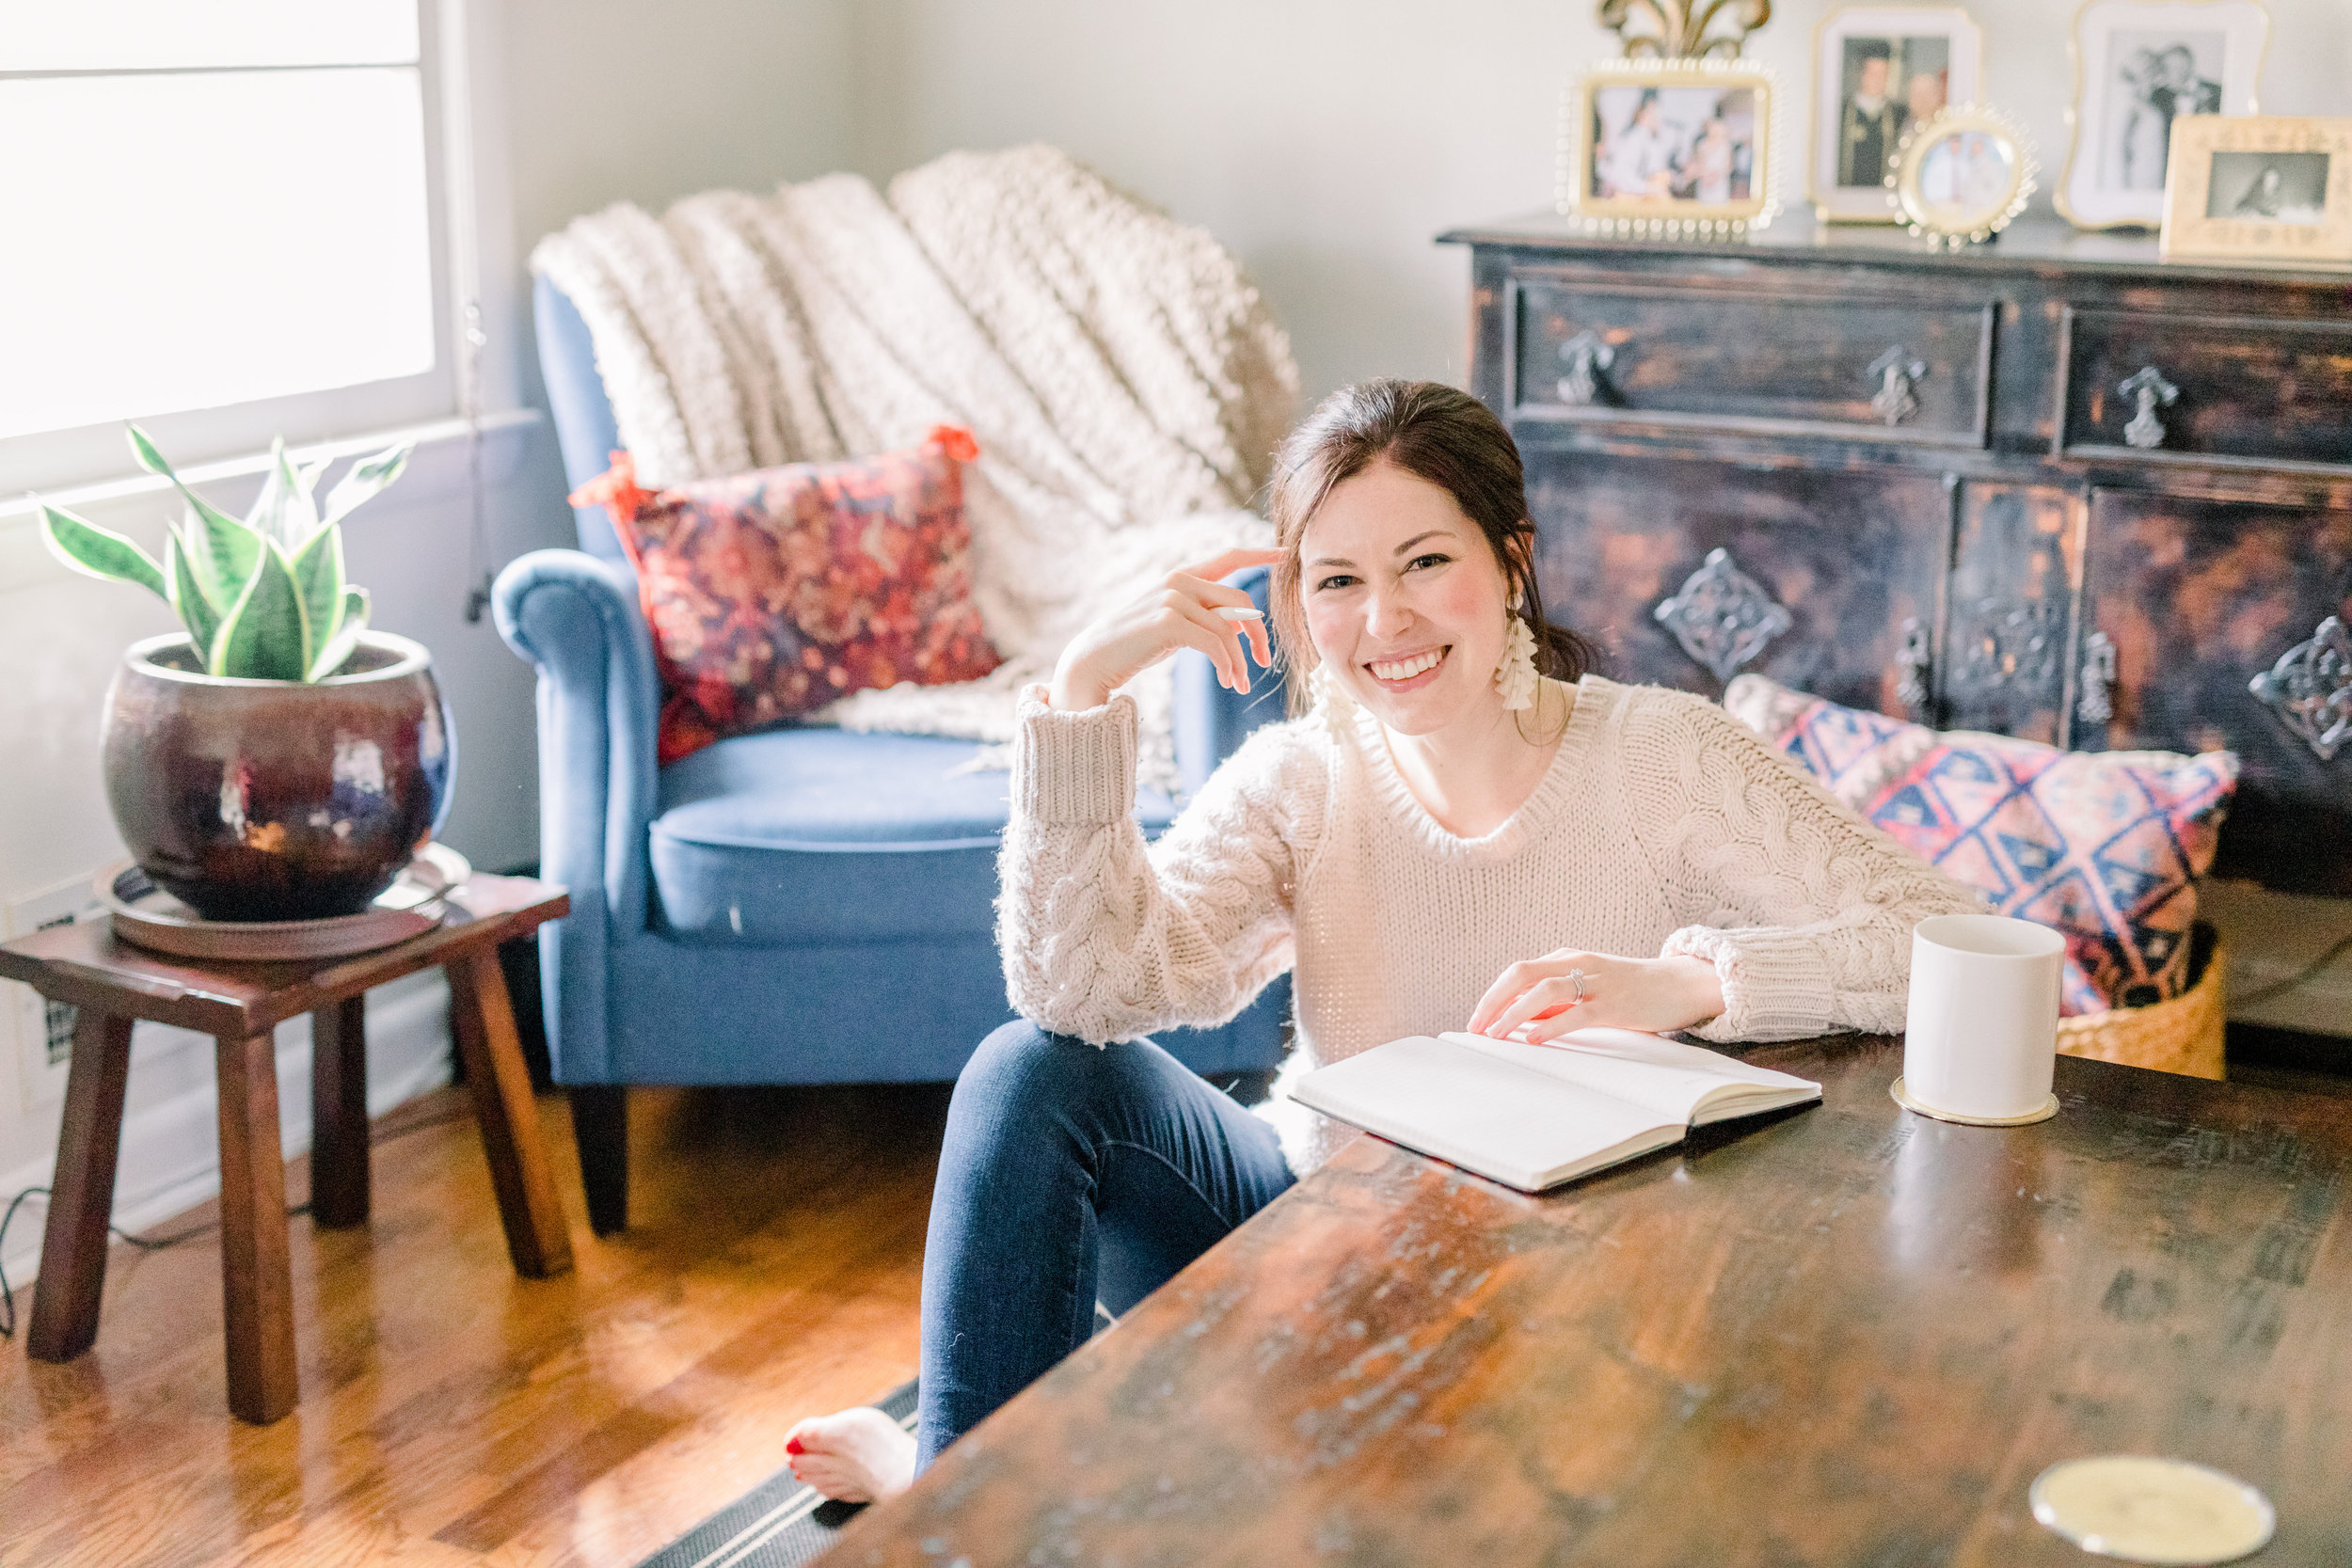 Introducing the Clean Slate Method - 4 weeks to renewed confidence in body and mind with Self-Love expert + Well-Being Coach Lauren Stickney